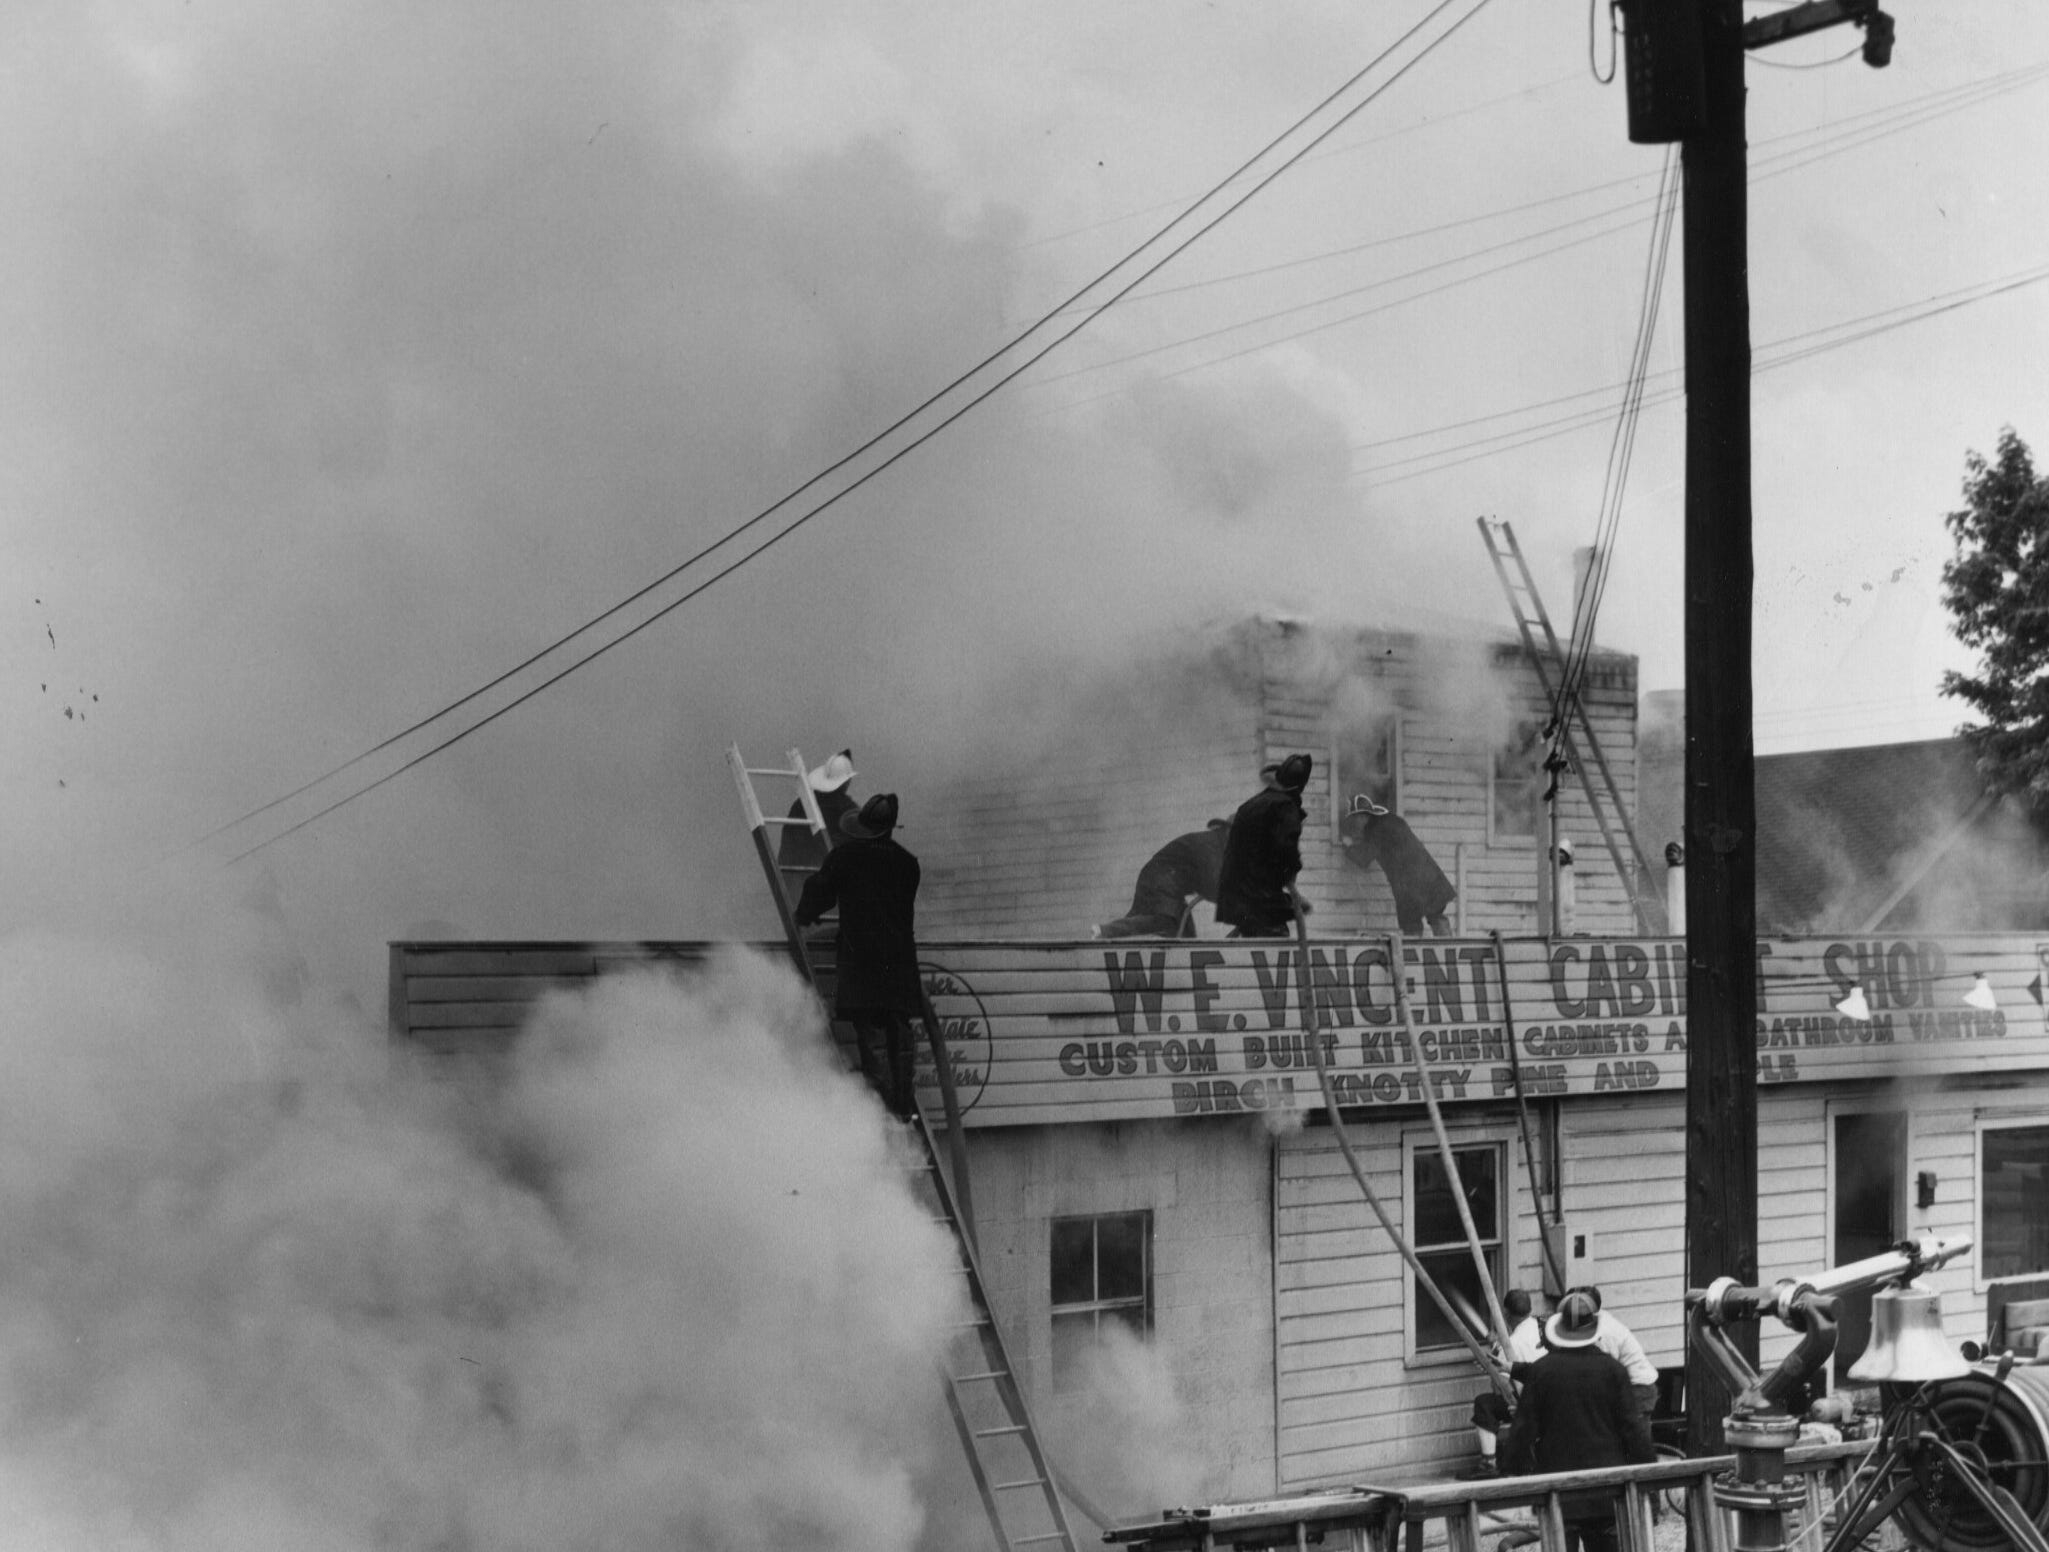 Part of the roof of the cabinet firm collapsed just before this picture was taken. 